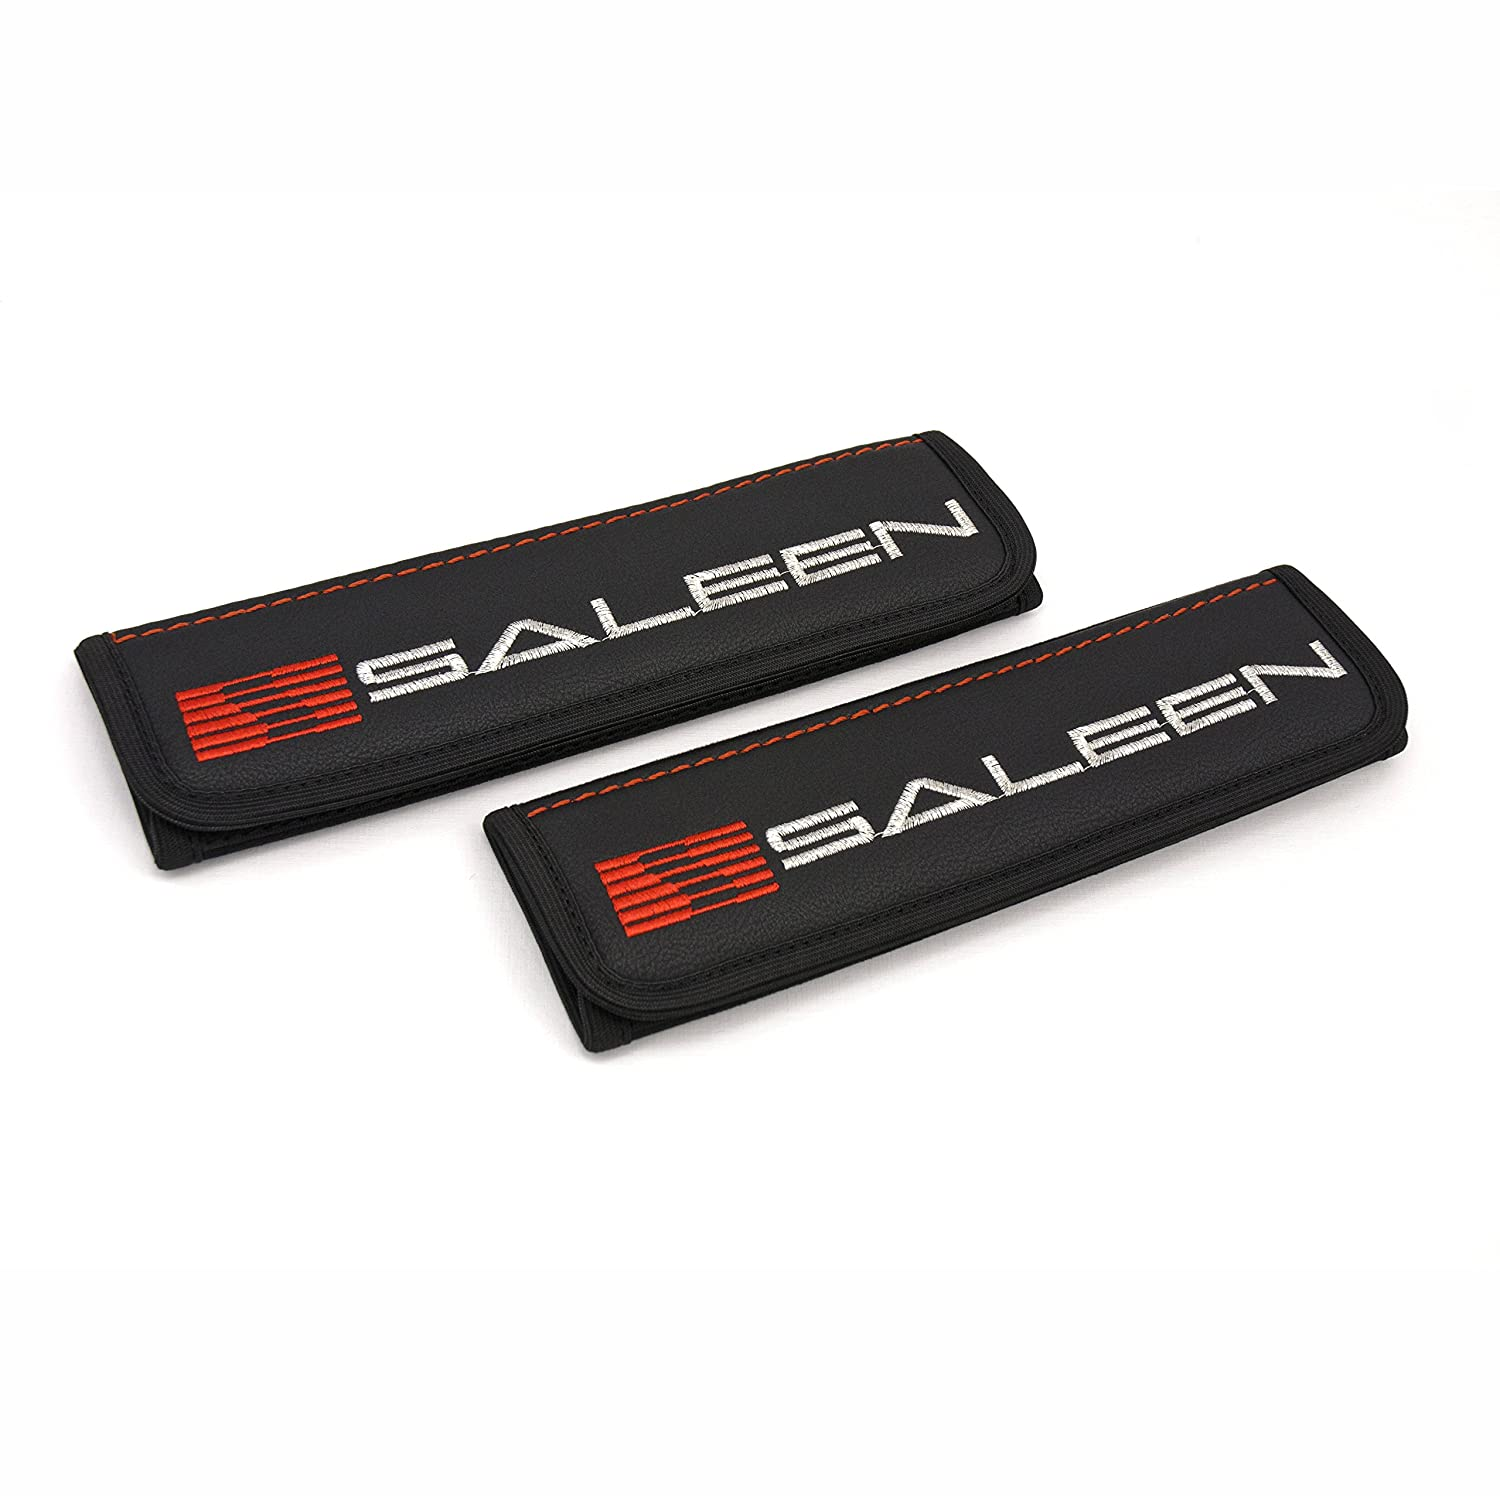 Car Interior Seat Belt Covers for Adults Black Shoulder Pads Seatbelt Cover pad with Embroidered red and Silver Emblem Accessories Compatible for Saleen Great idea for a Gift to The Driver! 2 pcs